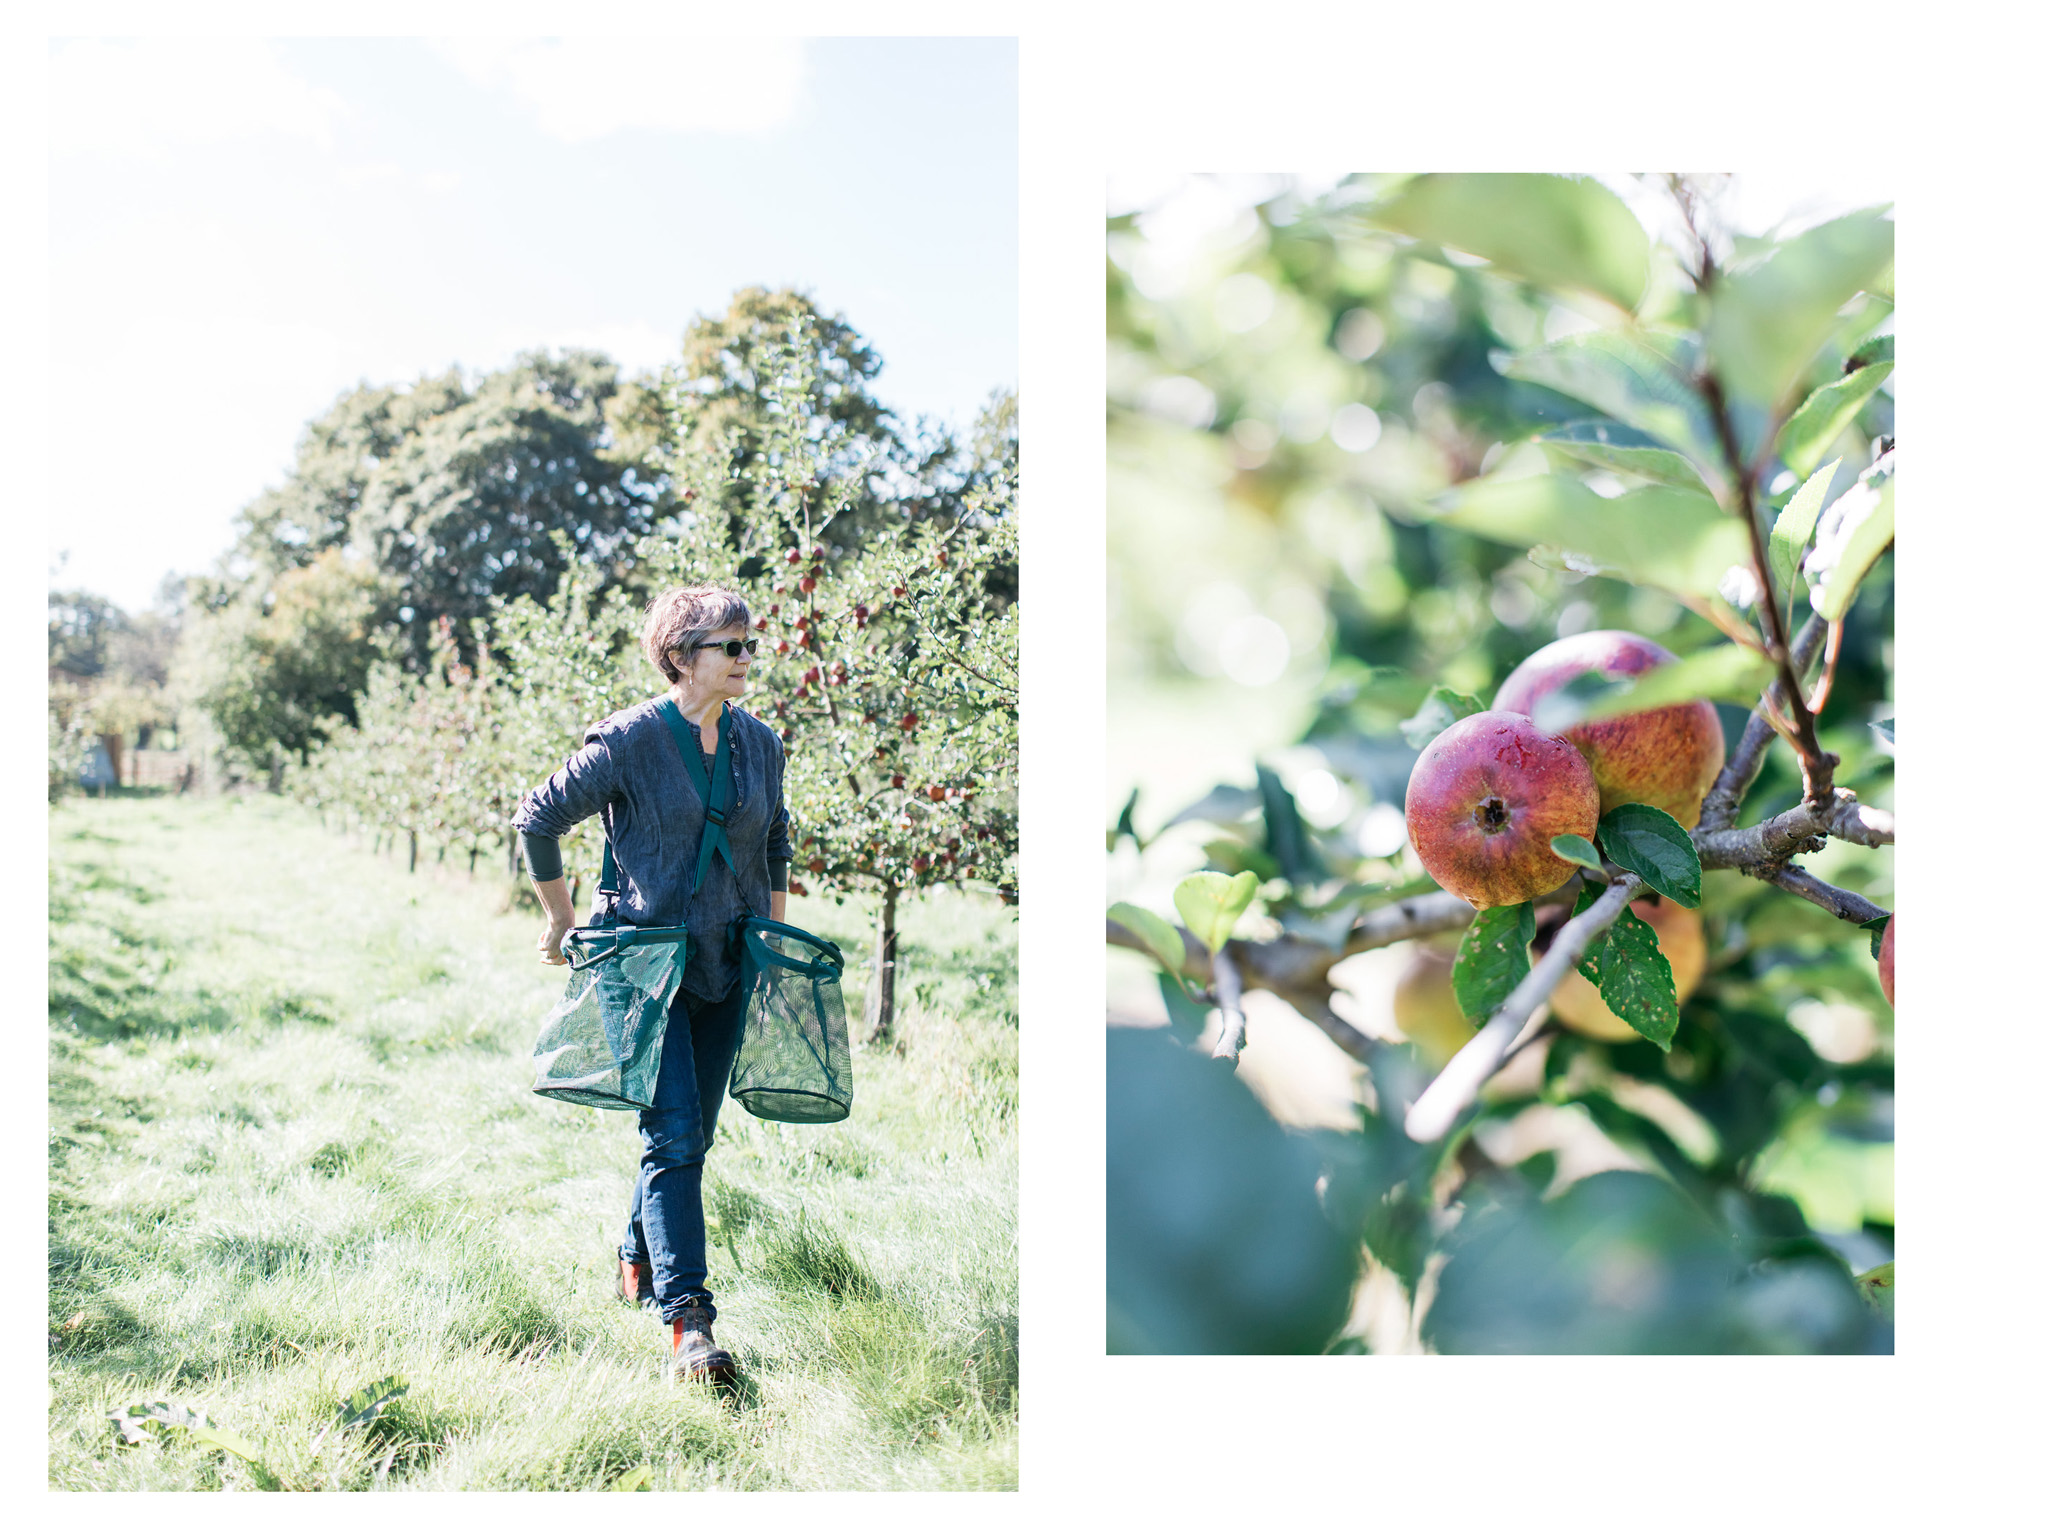 Photographs documenting a few hours in the life of apple season for Silly Moo Cider at Trenchmore Farm.